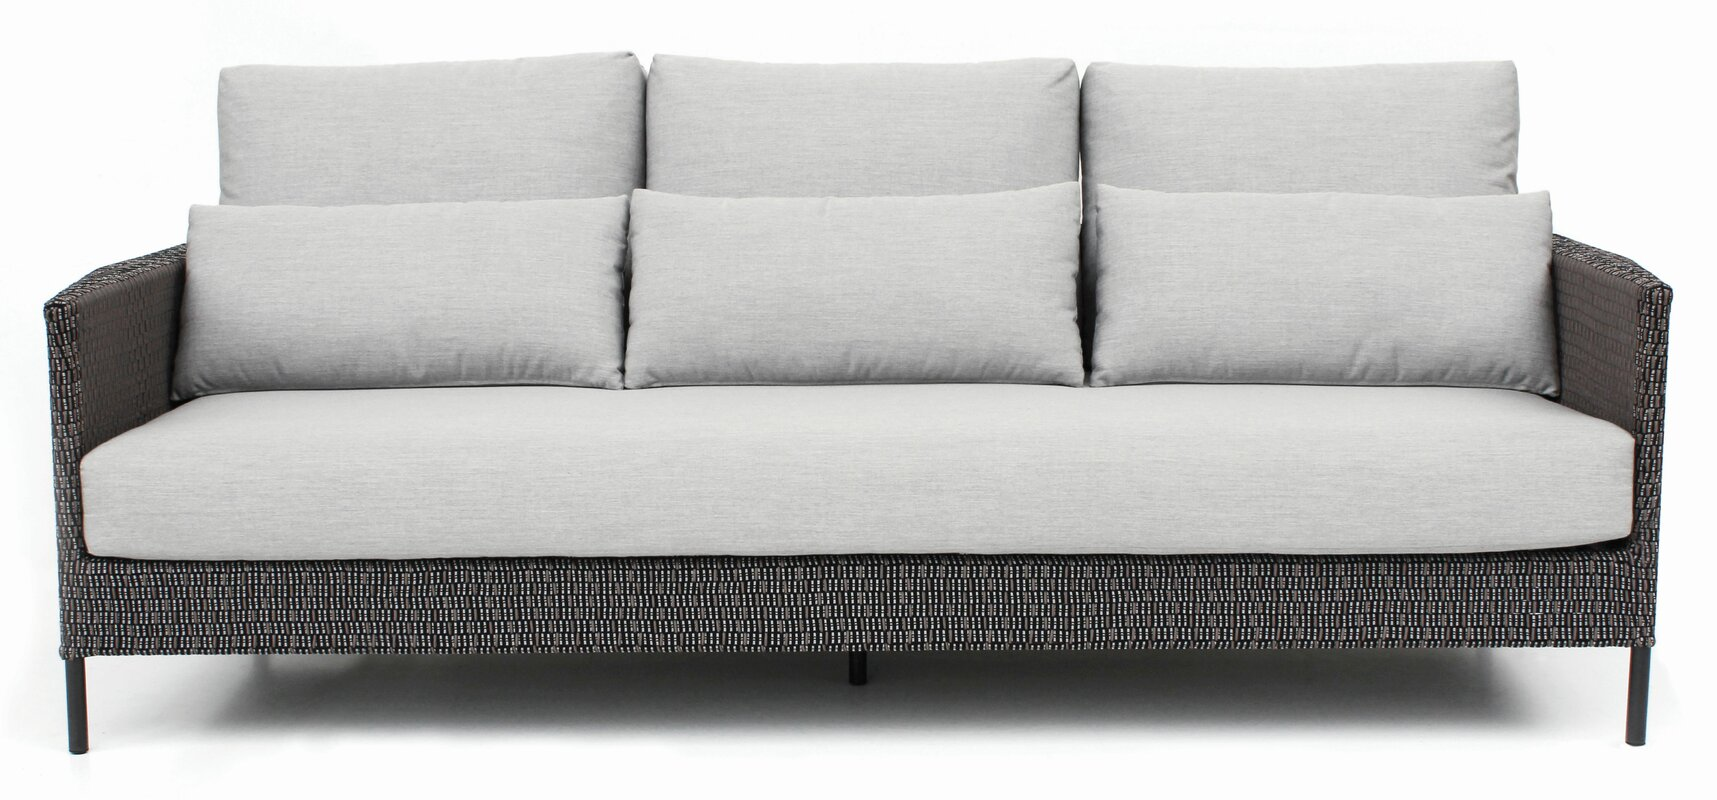 Precision Indoor Outdoor 3 Seater Patio Sofa With Cushions